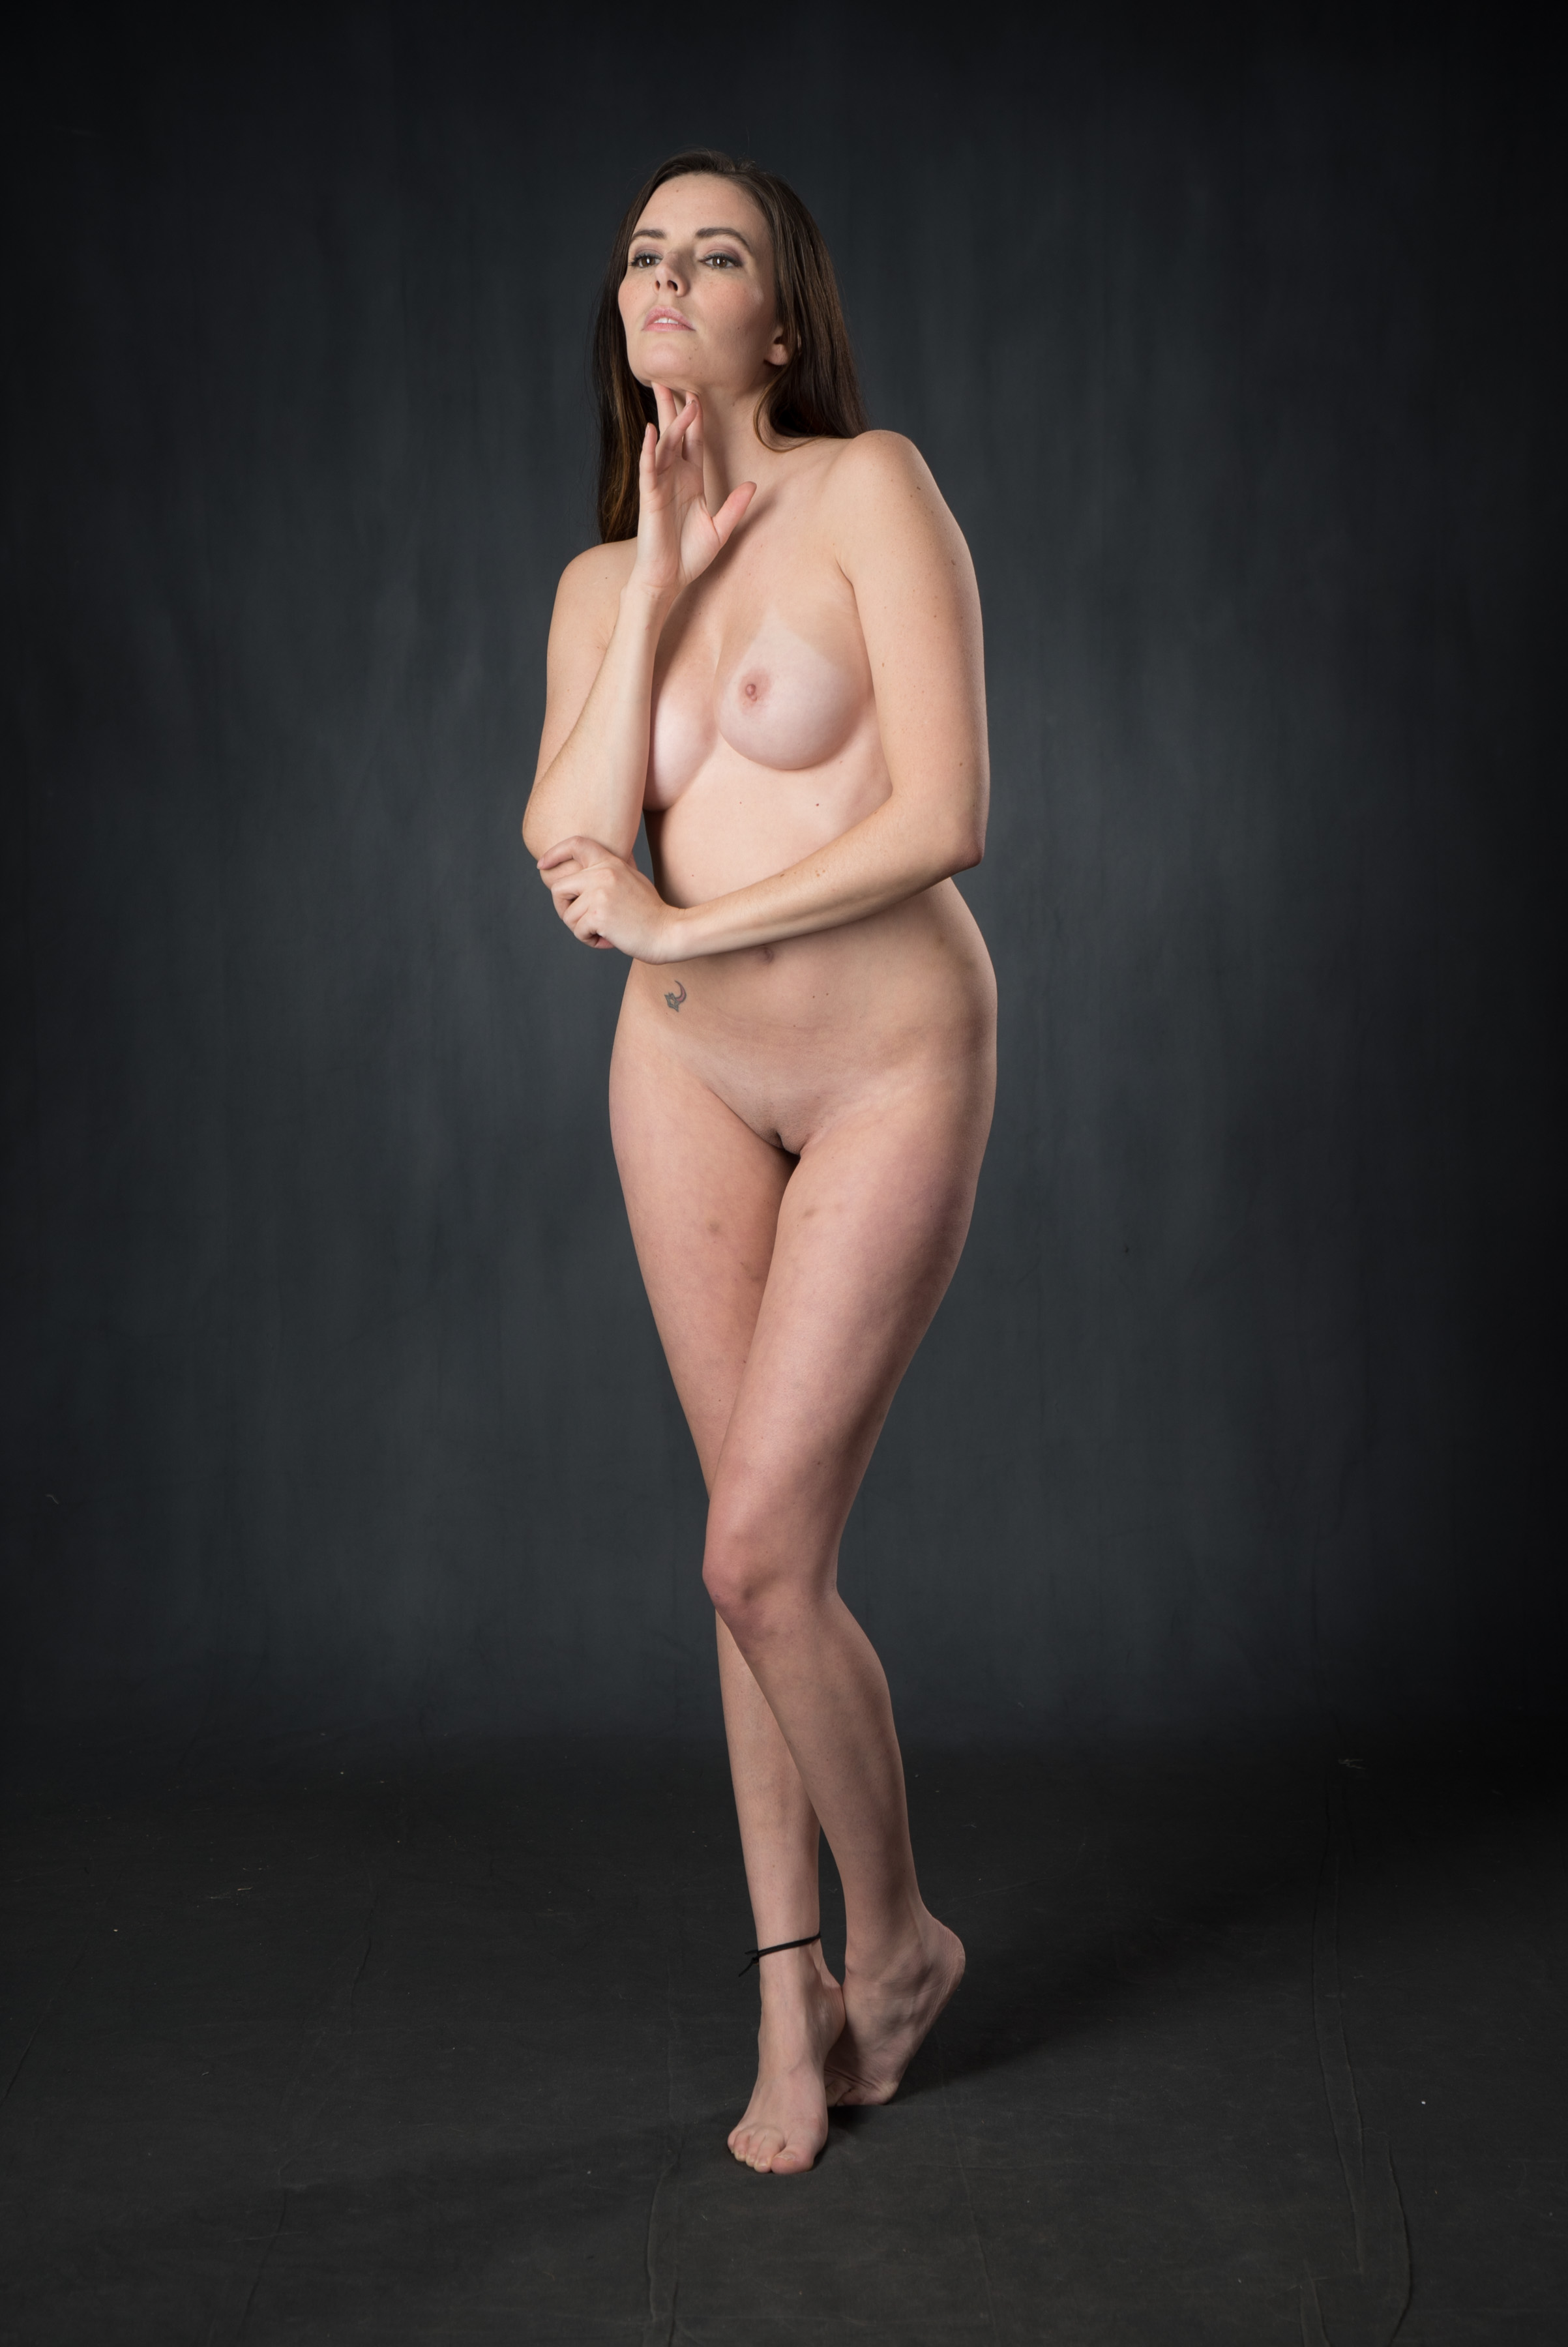 Nude Standing Poses 12